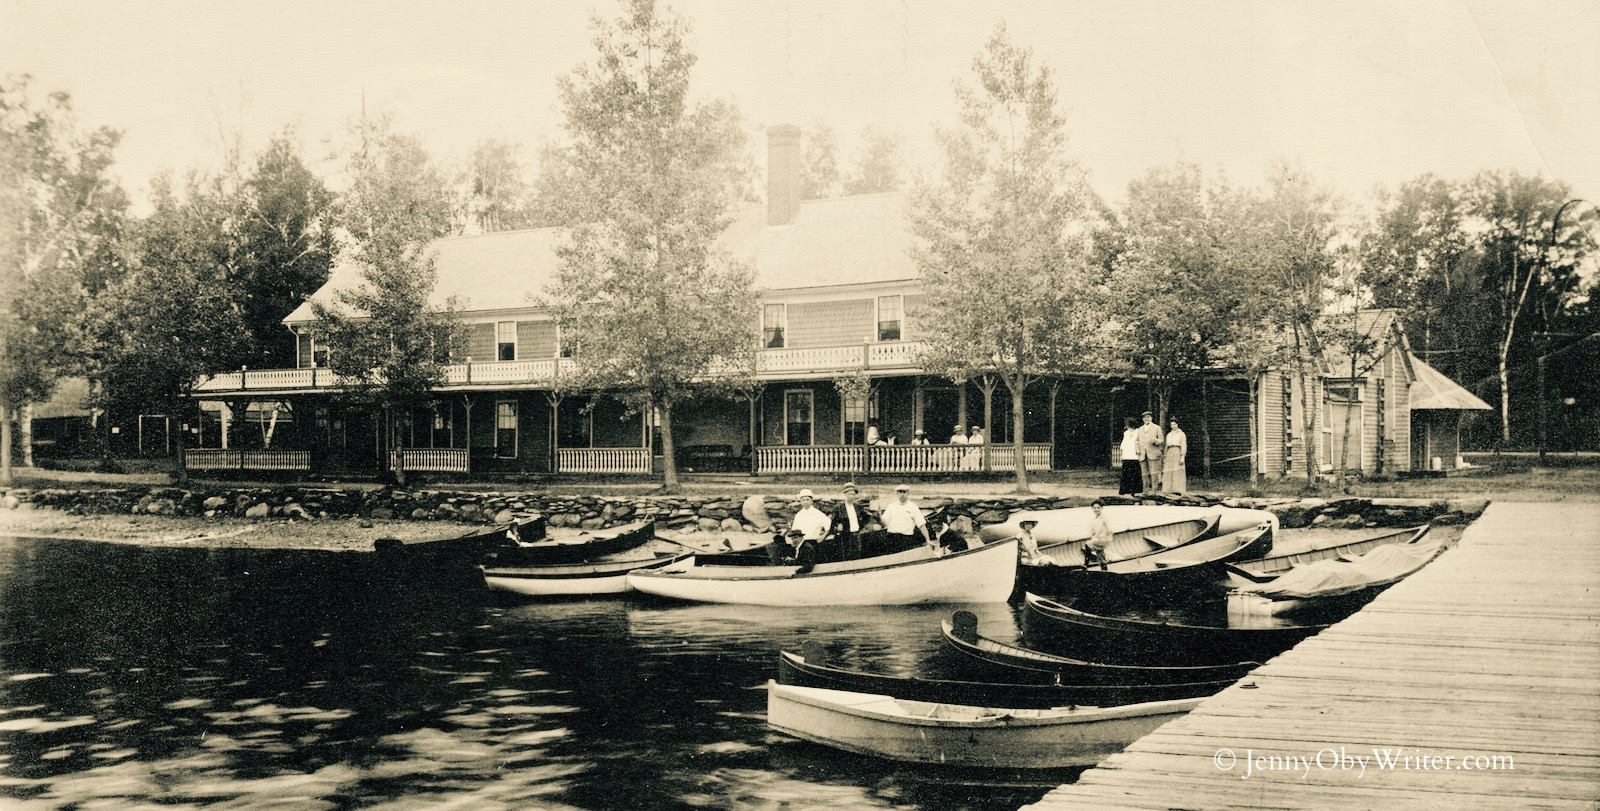 """The old Lakewood Hotel, built by the Somerset Traction Company in 1895. It was razed in 1922 to make way for the """"bungalows"""" that Herbert Swett was building around the grove."""